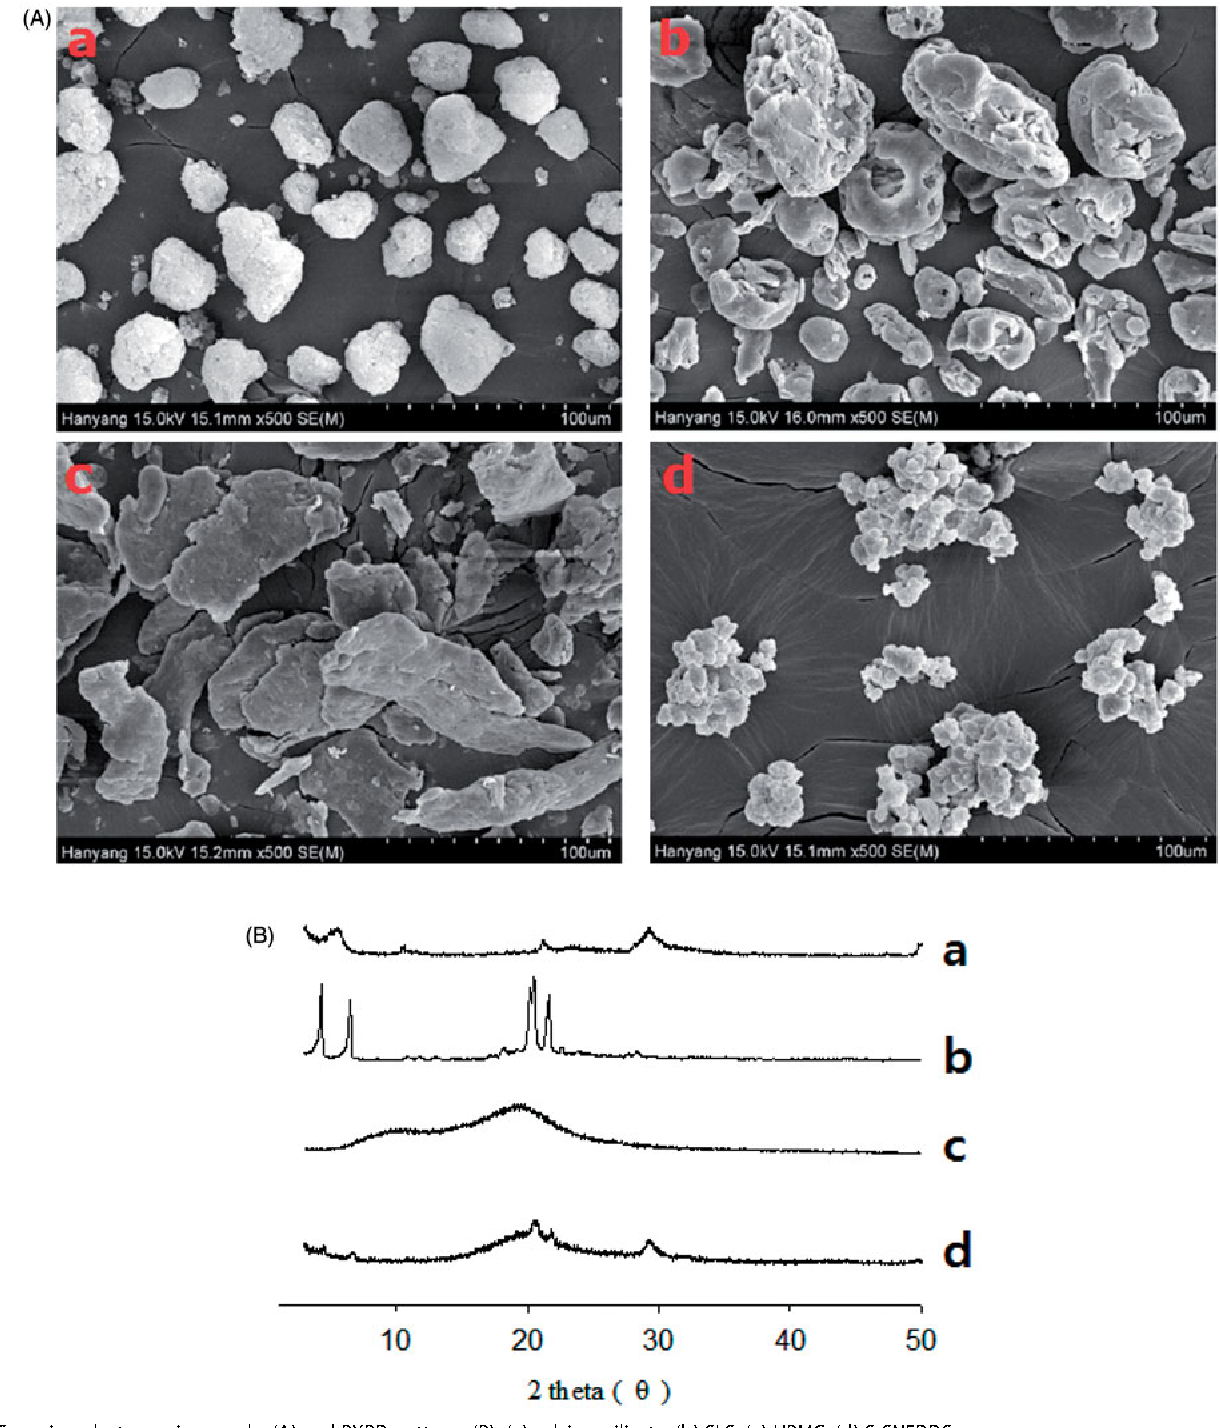 Figure 3. Scanning electron micrographs (A) and PXRD patterns (B): (a) calcium silicate; (b) SLS; (c) HPMC; (d) S-SNEDDS.